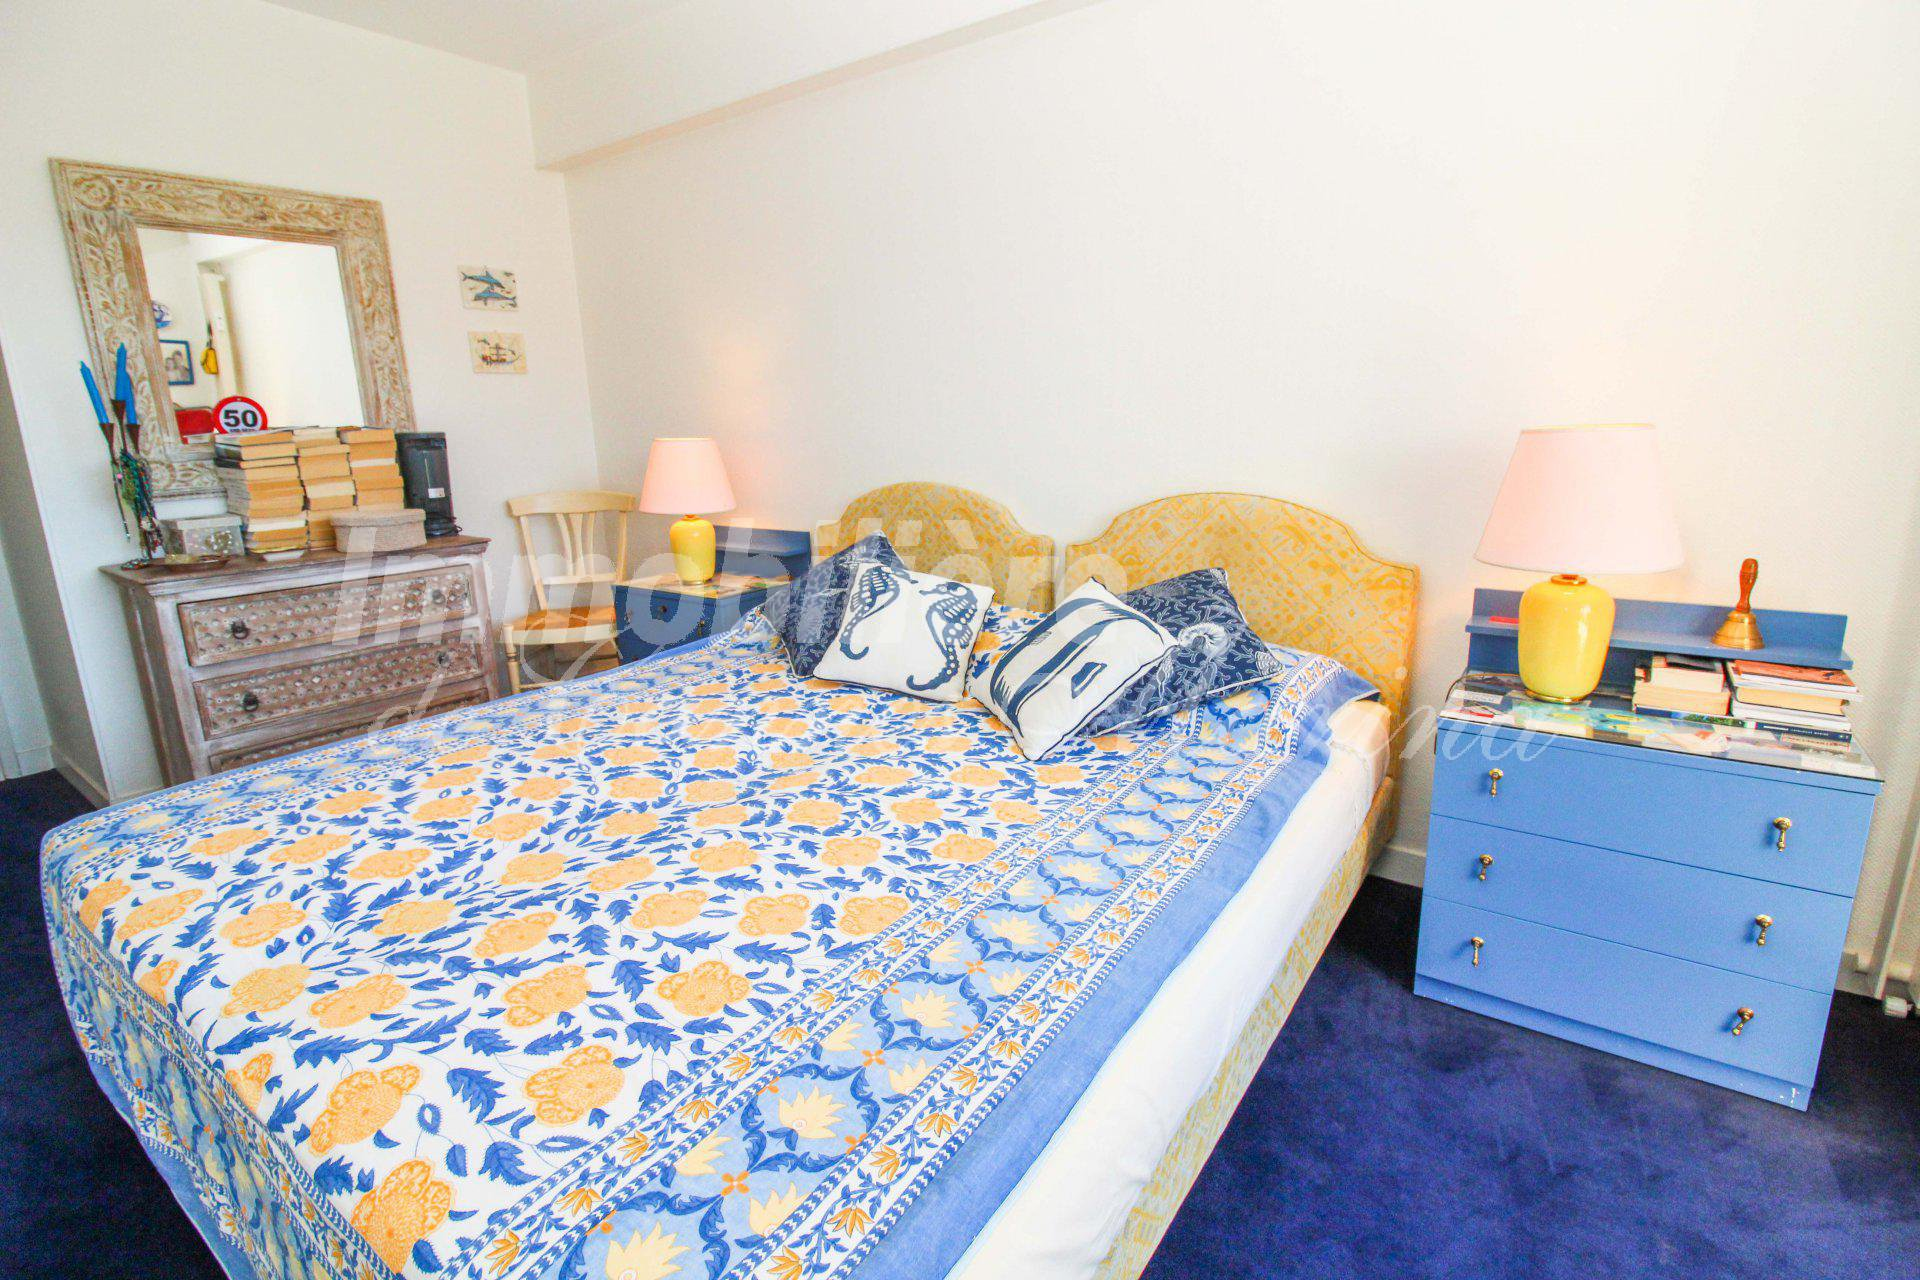 Superb 2 bedrooms - Excellent condition - Nice golf view